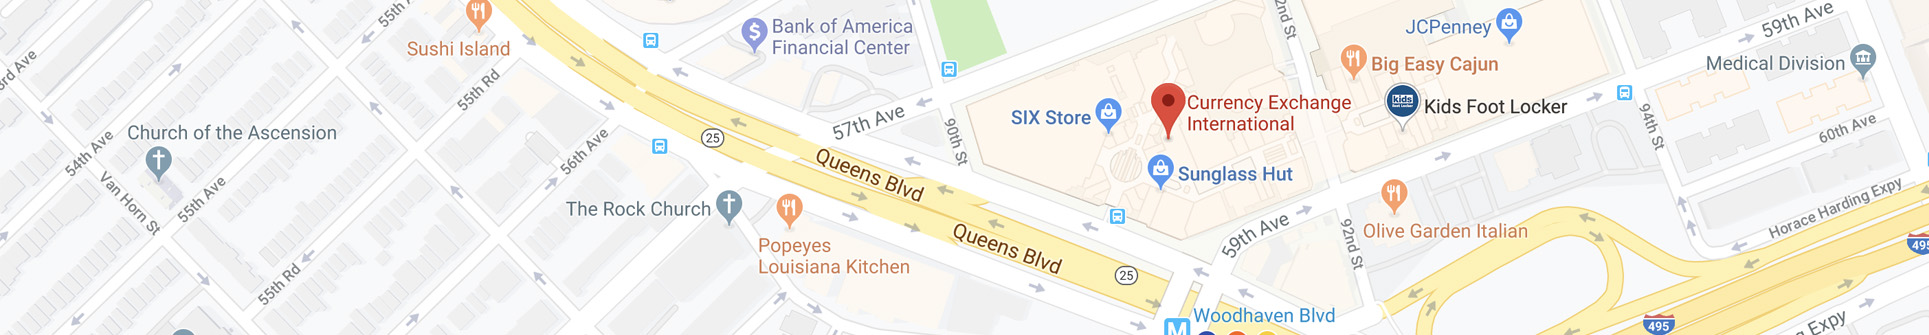 cxi queens center map.jpg